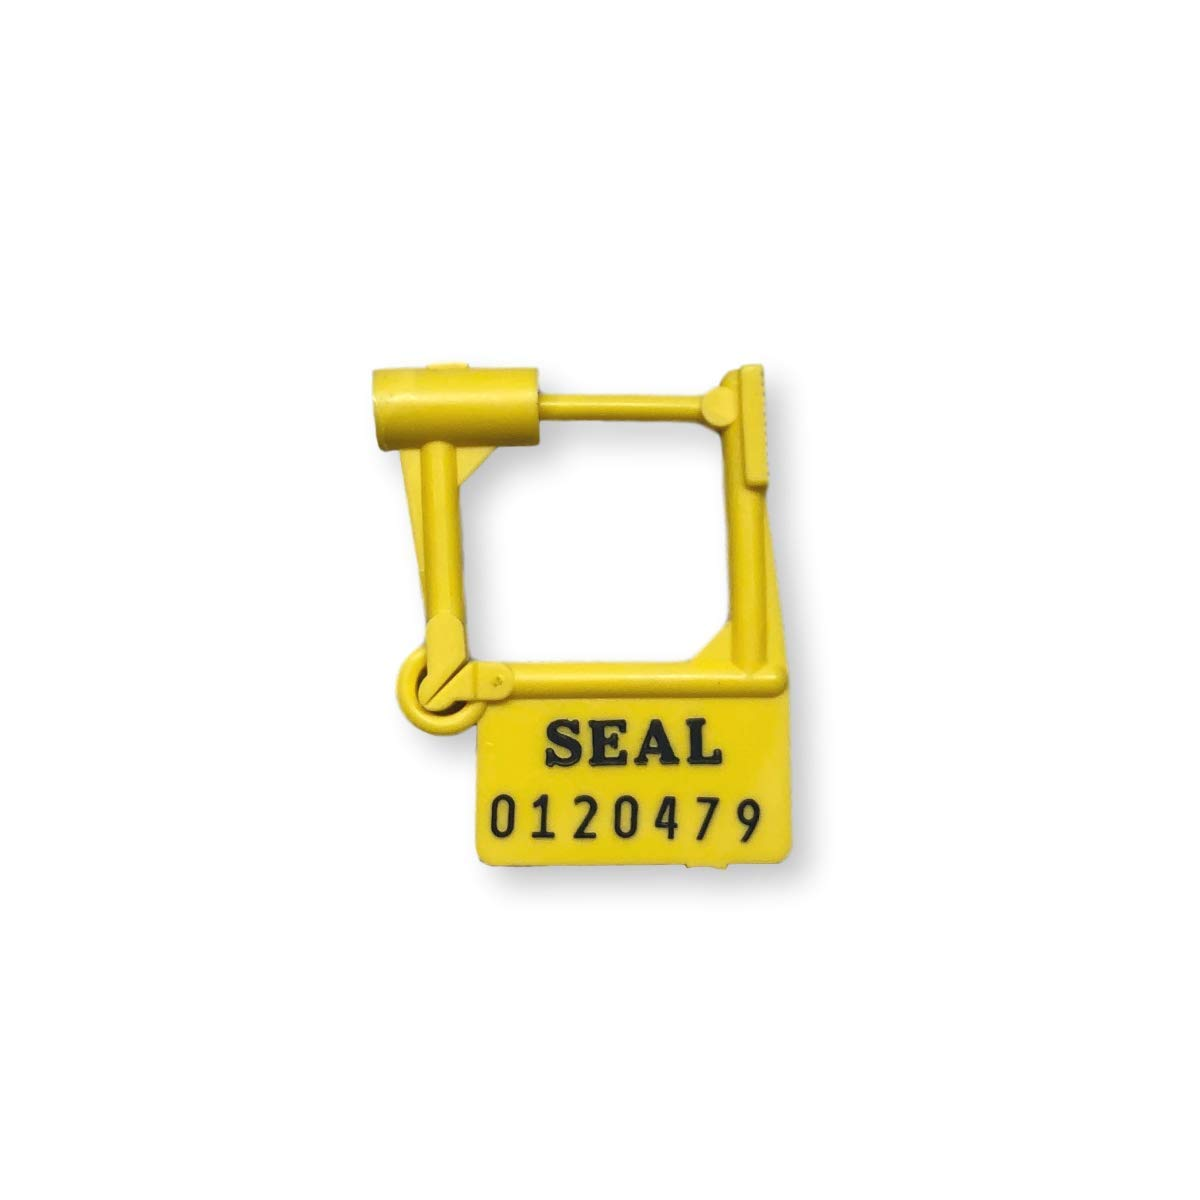 TydenBrooks Security Products, Spring-Lok Padlock Security Seal, Yellow, 1000 Count by TydenBrooks Security Products Group